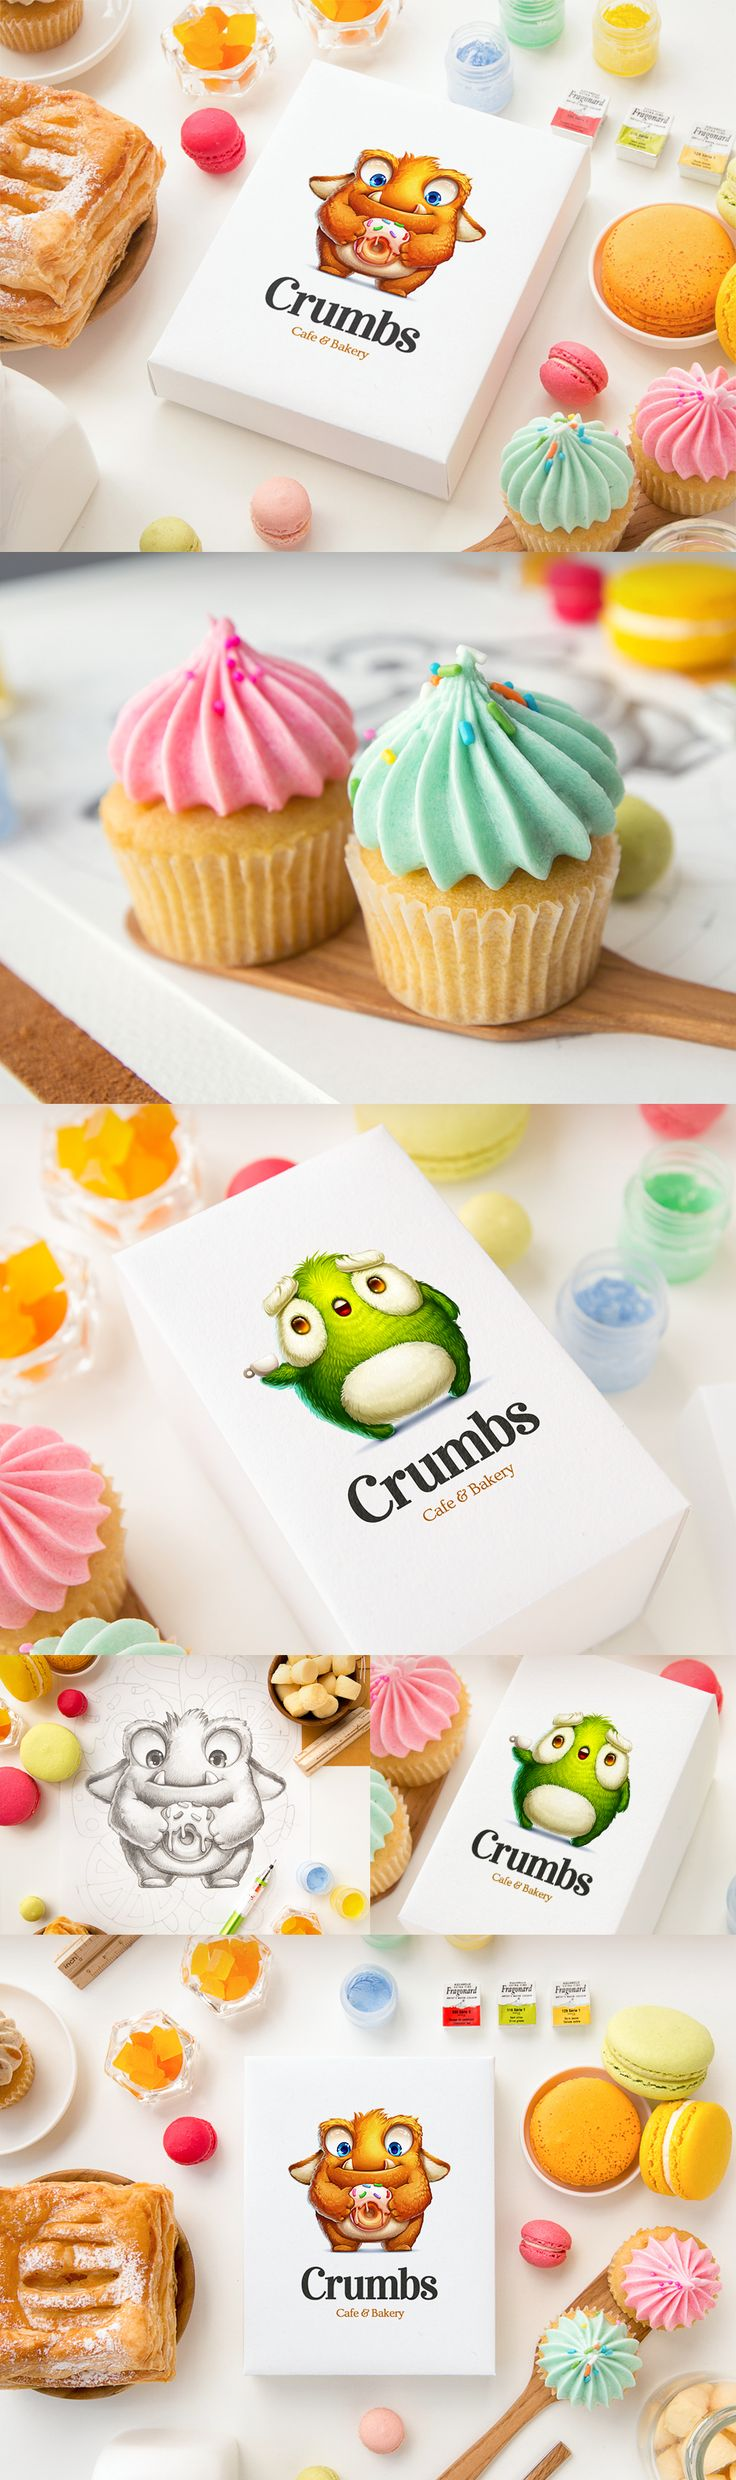 Crumbs characters another packaging cutie by Mike at Creative Mints PD